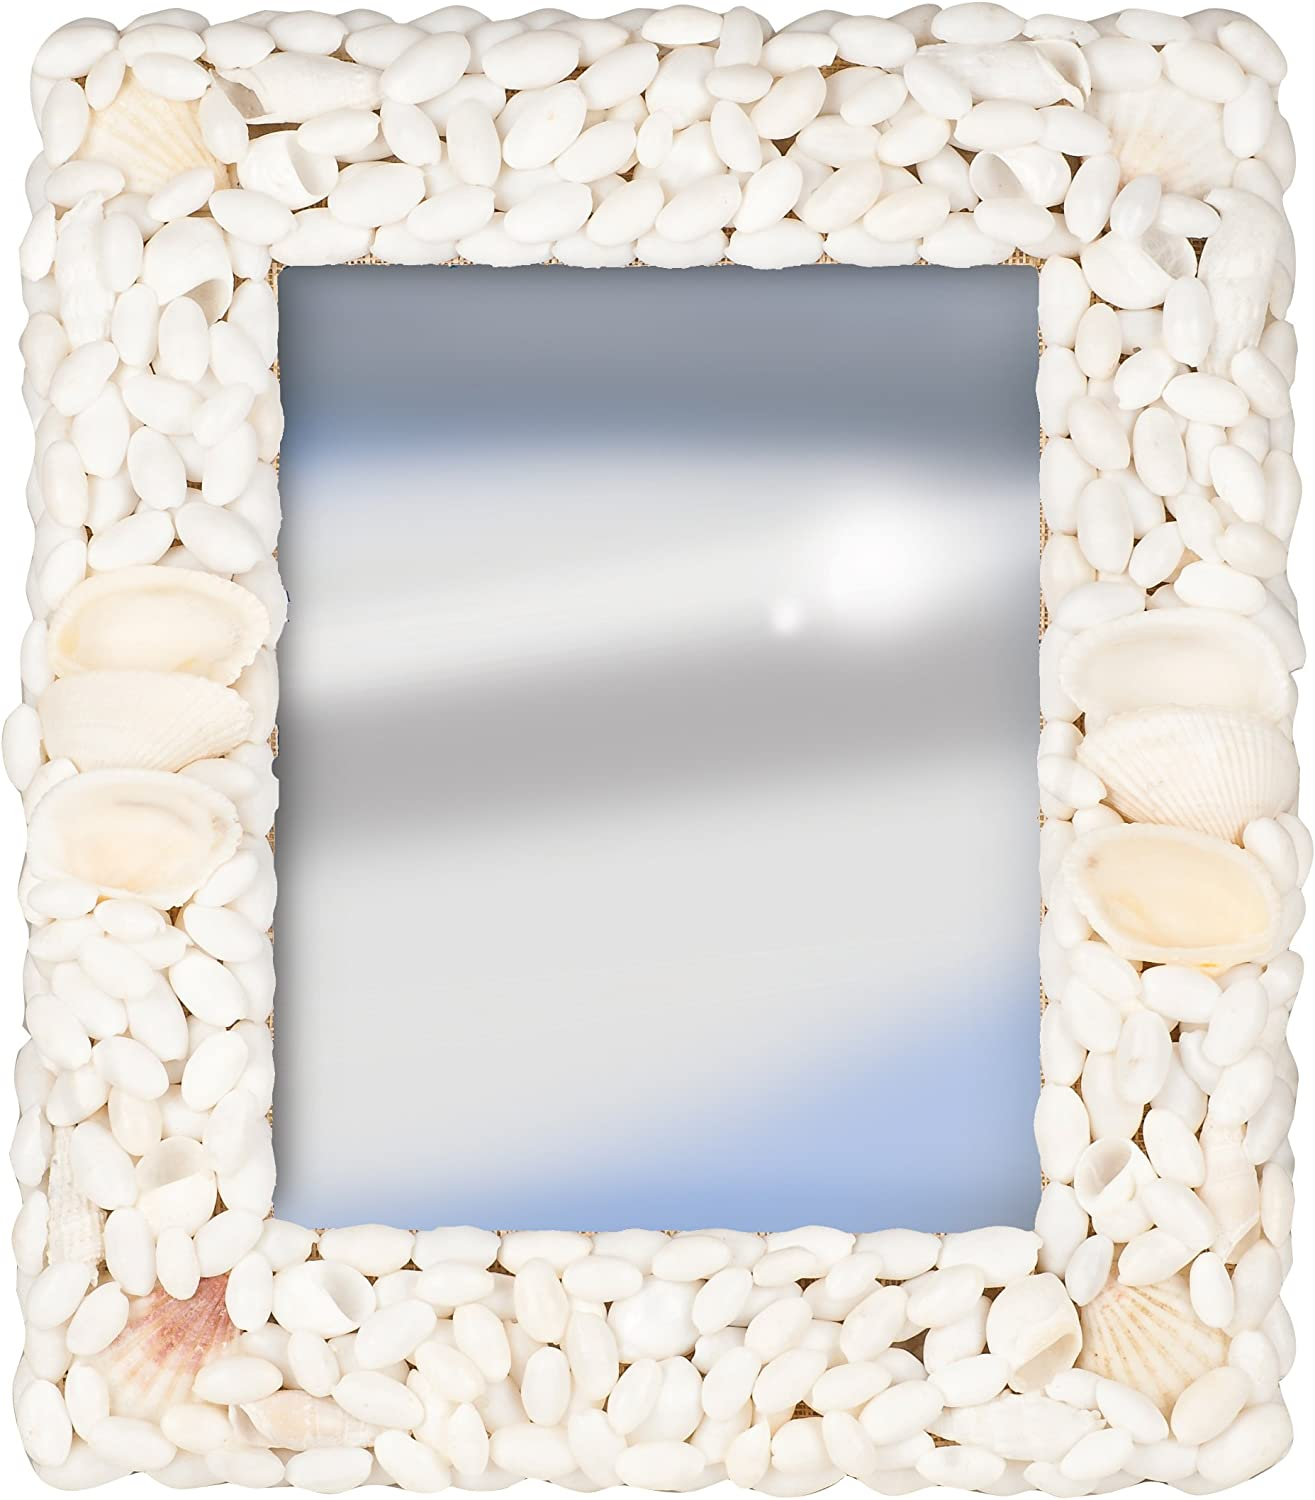 Pinnacle Terragrafics Palm Springs Wall Mounted Shell Mirror, 18 by 24-Inch, White